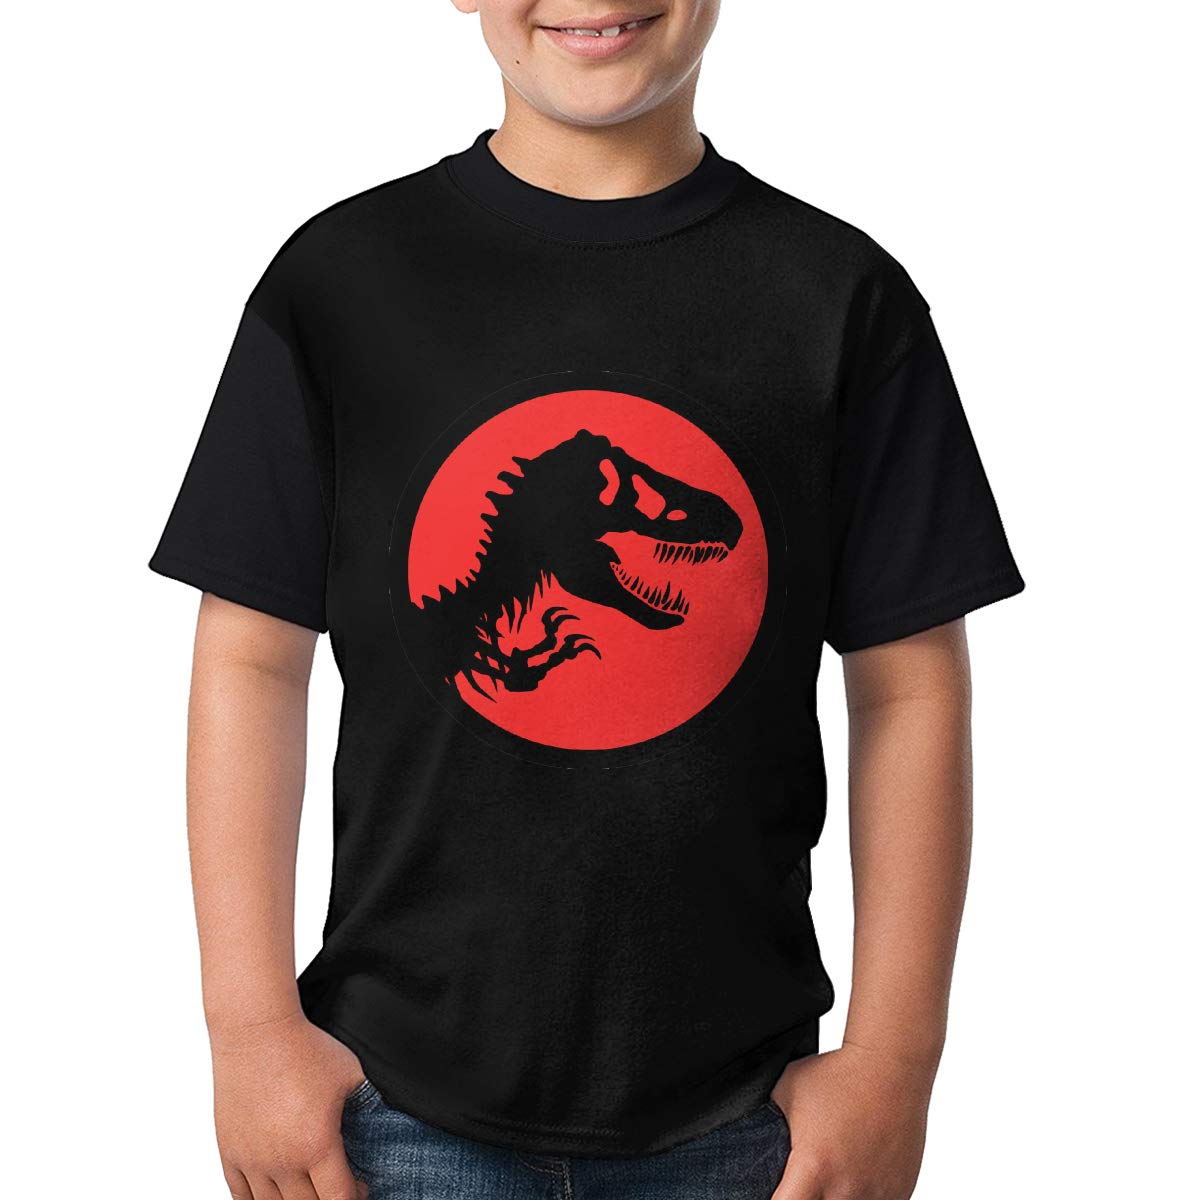 YIIYEE This is How I Roll Teenage Youth Clothing Short-Sleeve T-Shirt for Boys /& Girls